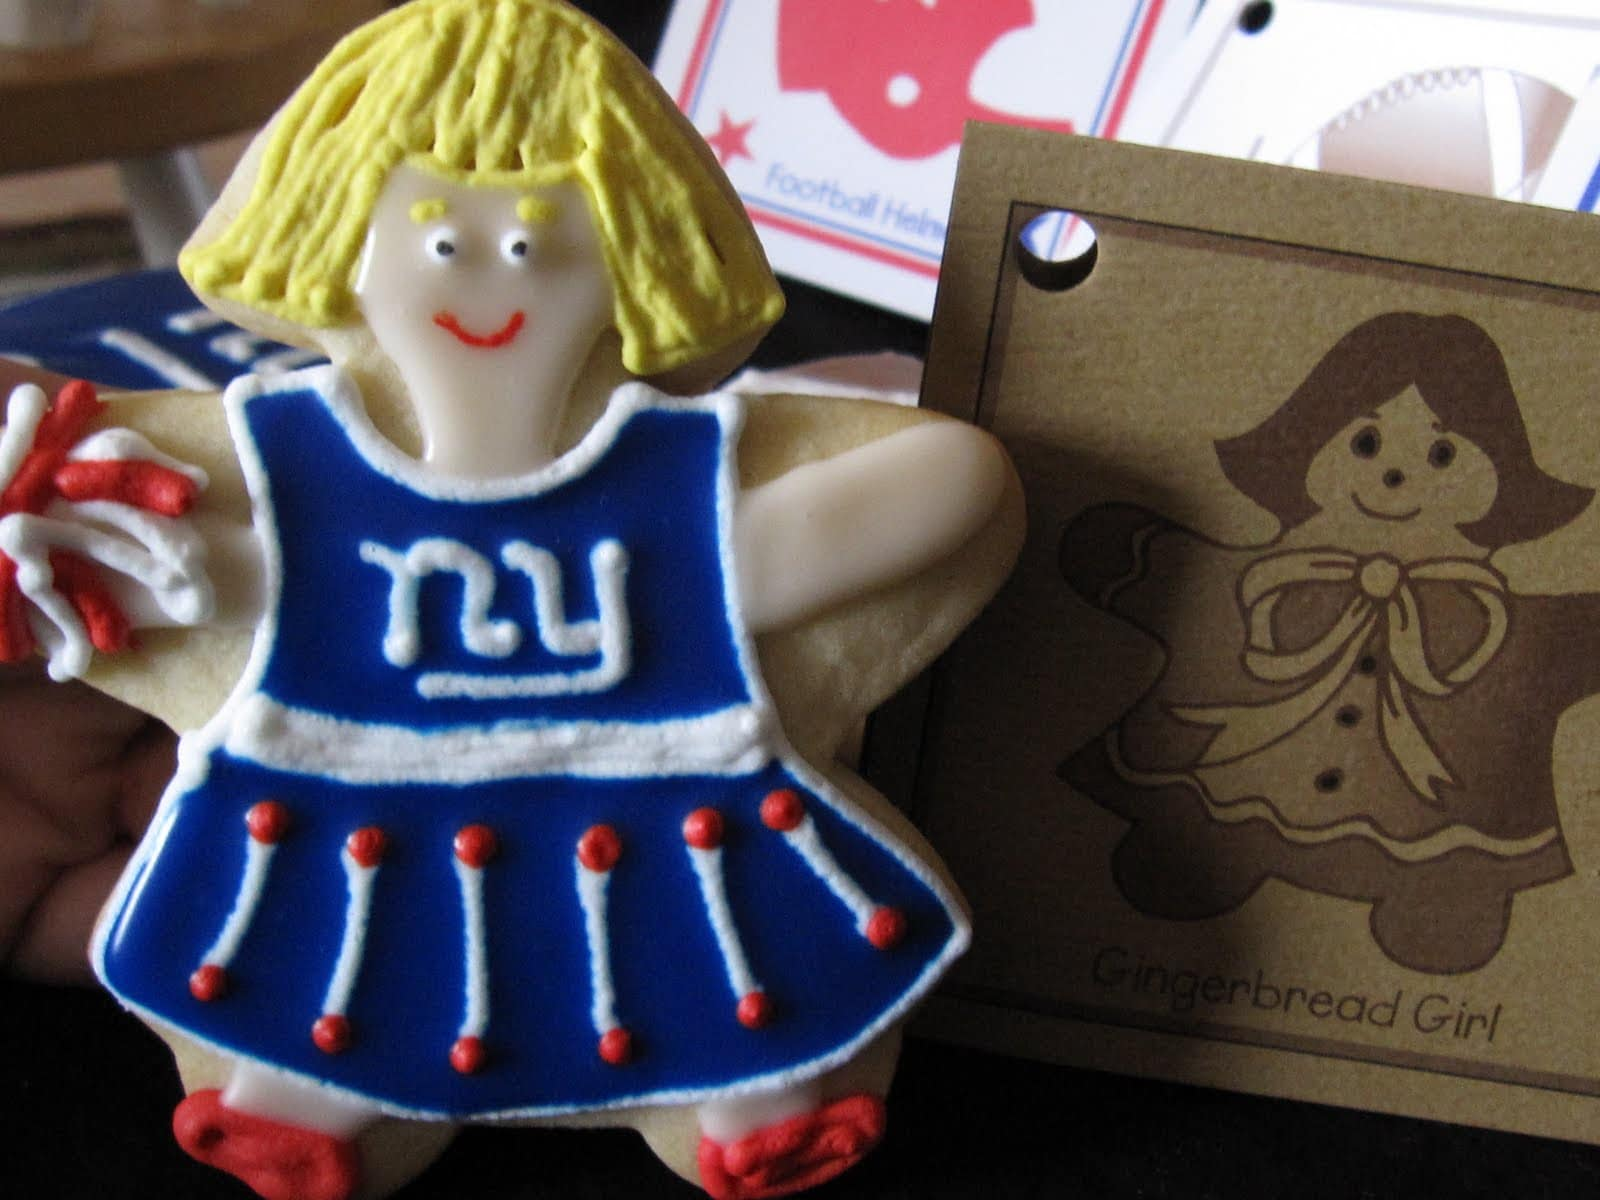 NY Giants cheerleader cookie